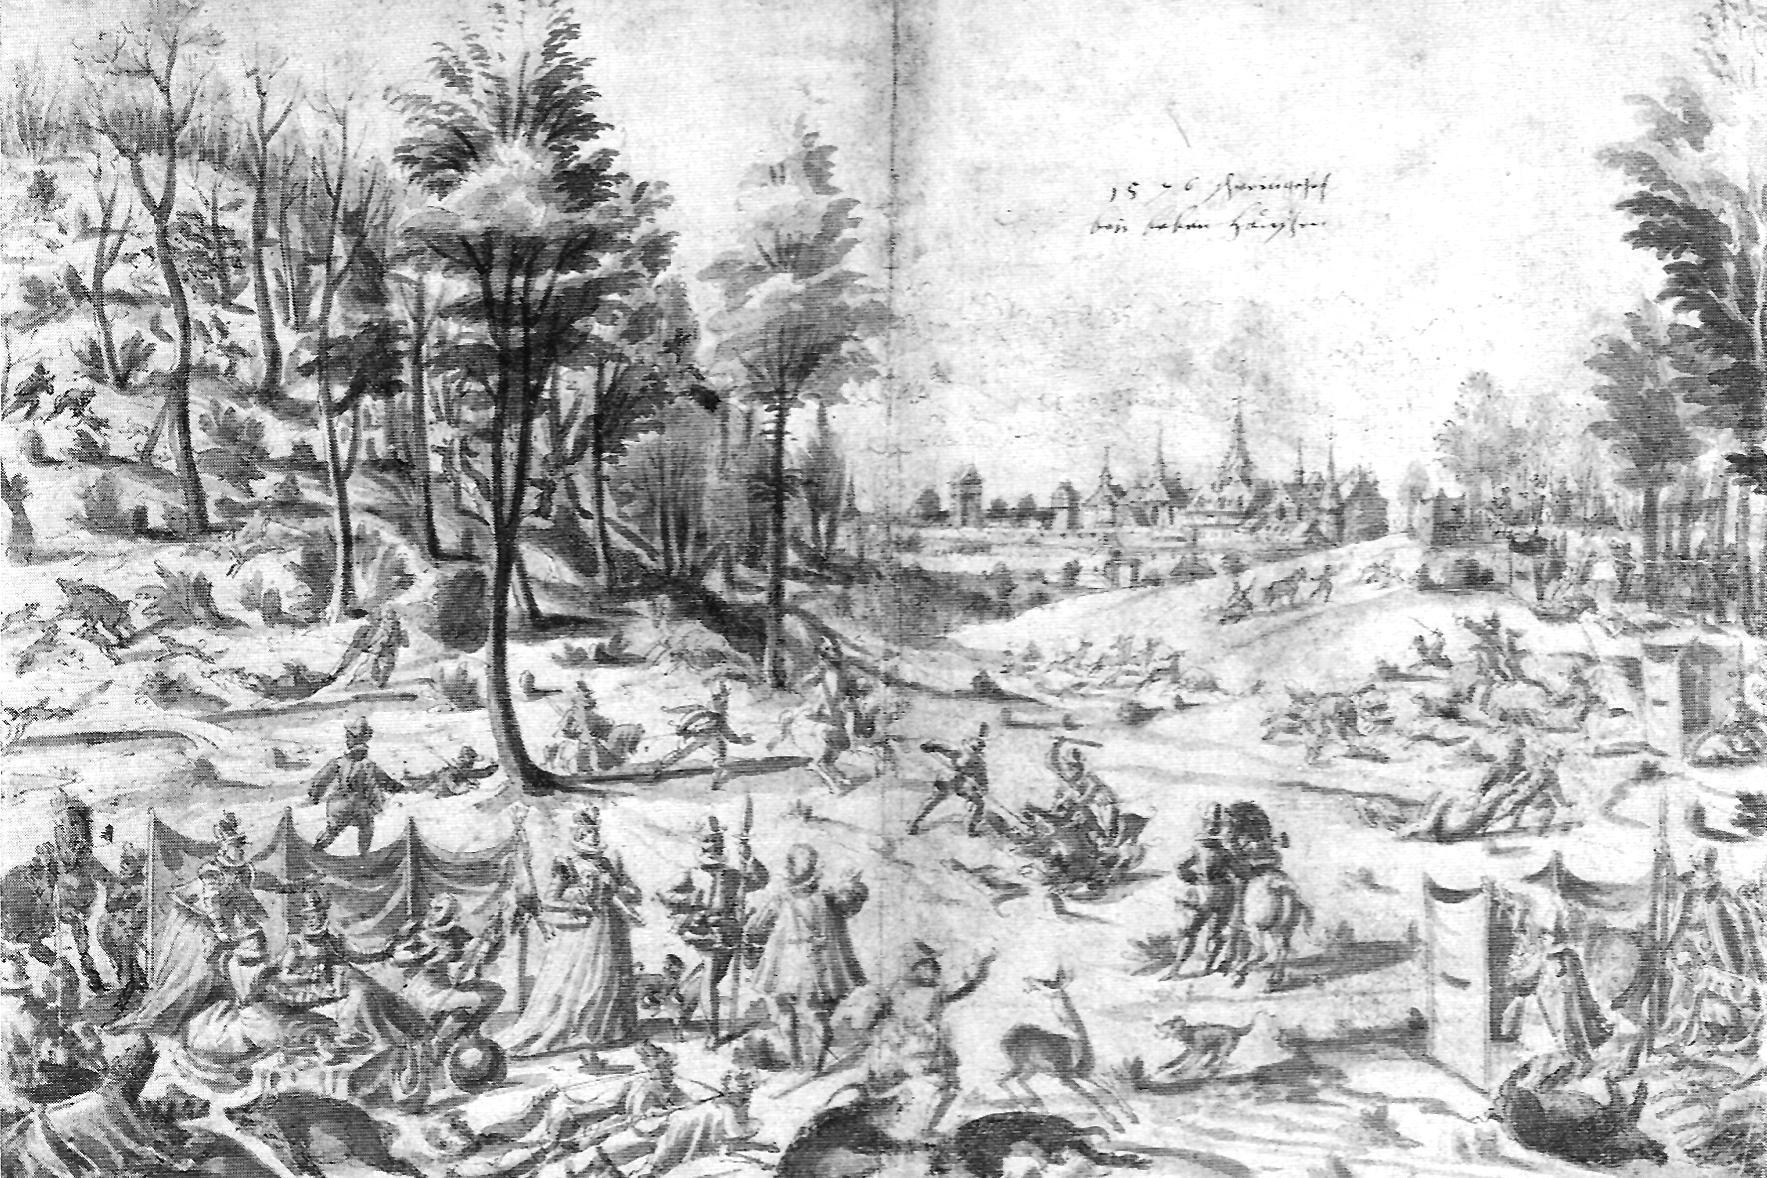 Wild boar hunt at Bebenhausen, washed pen and ink drawing, 1576. Image: Wikipedia, in the public domain